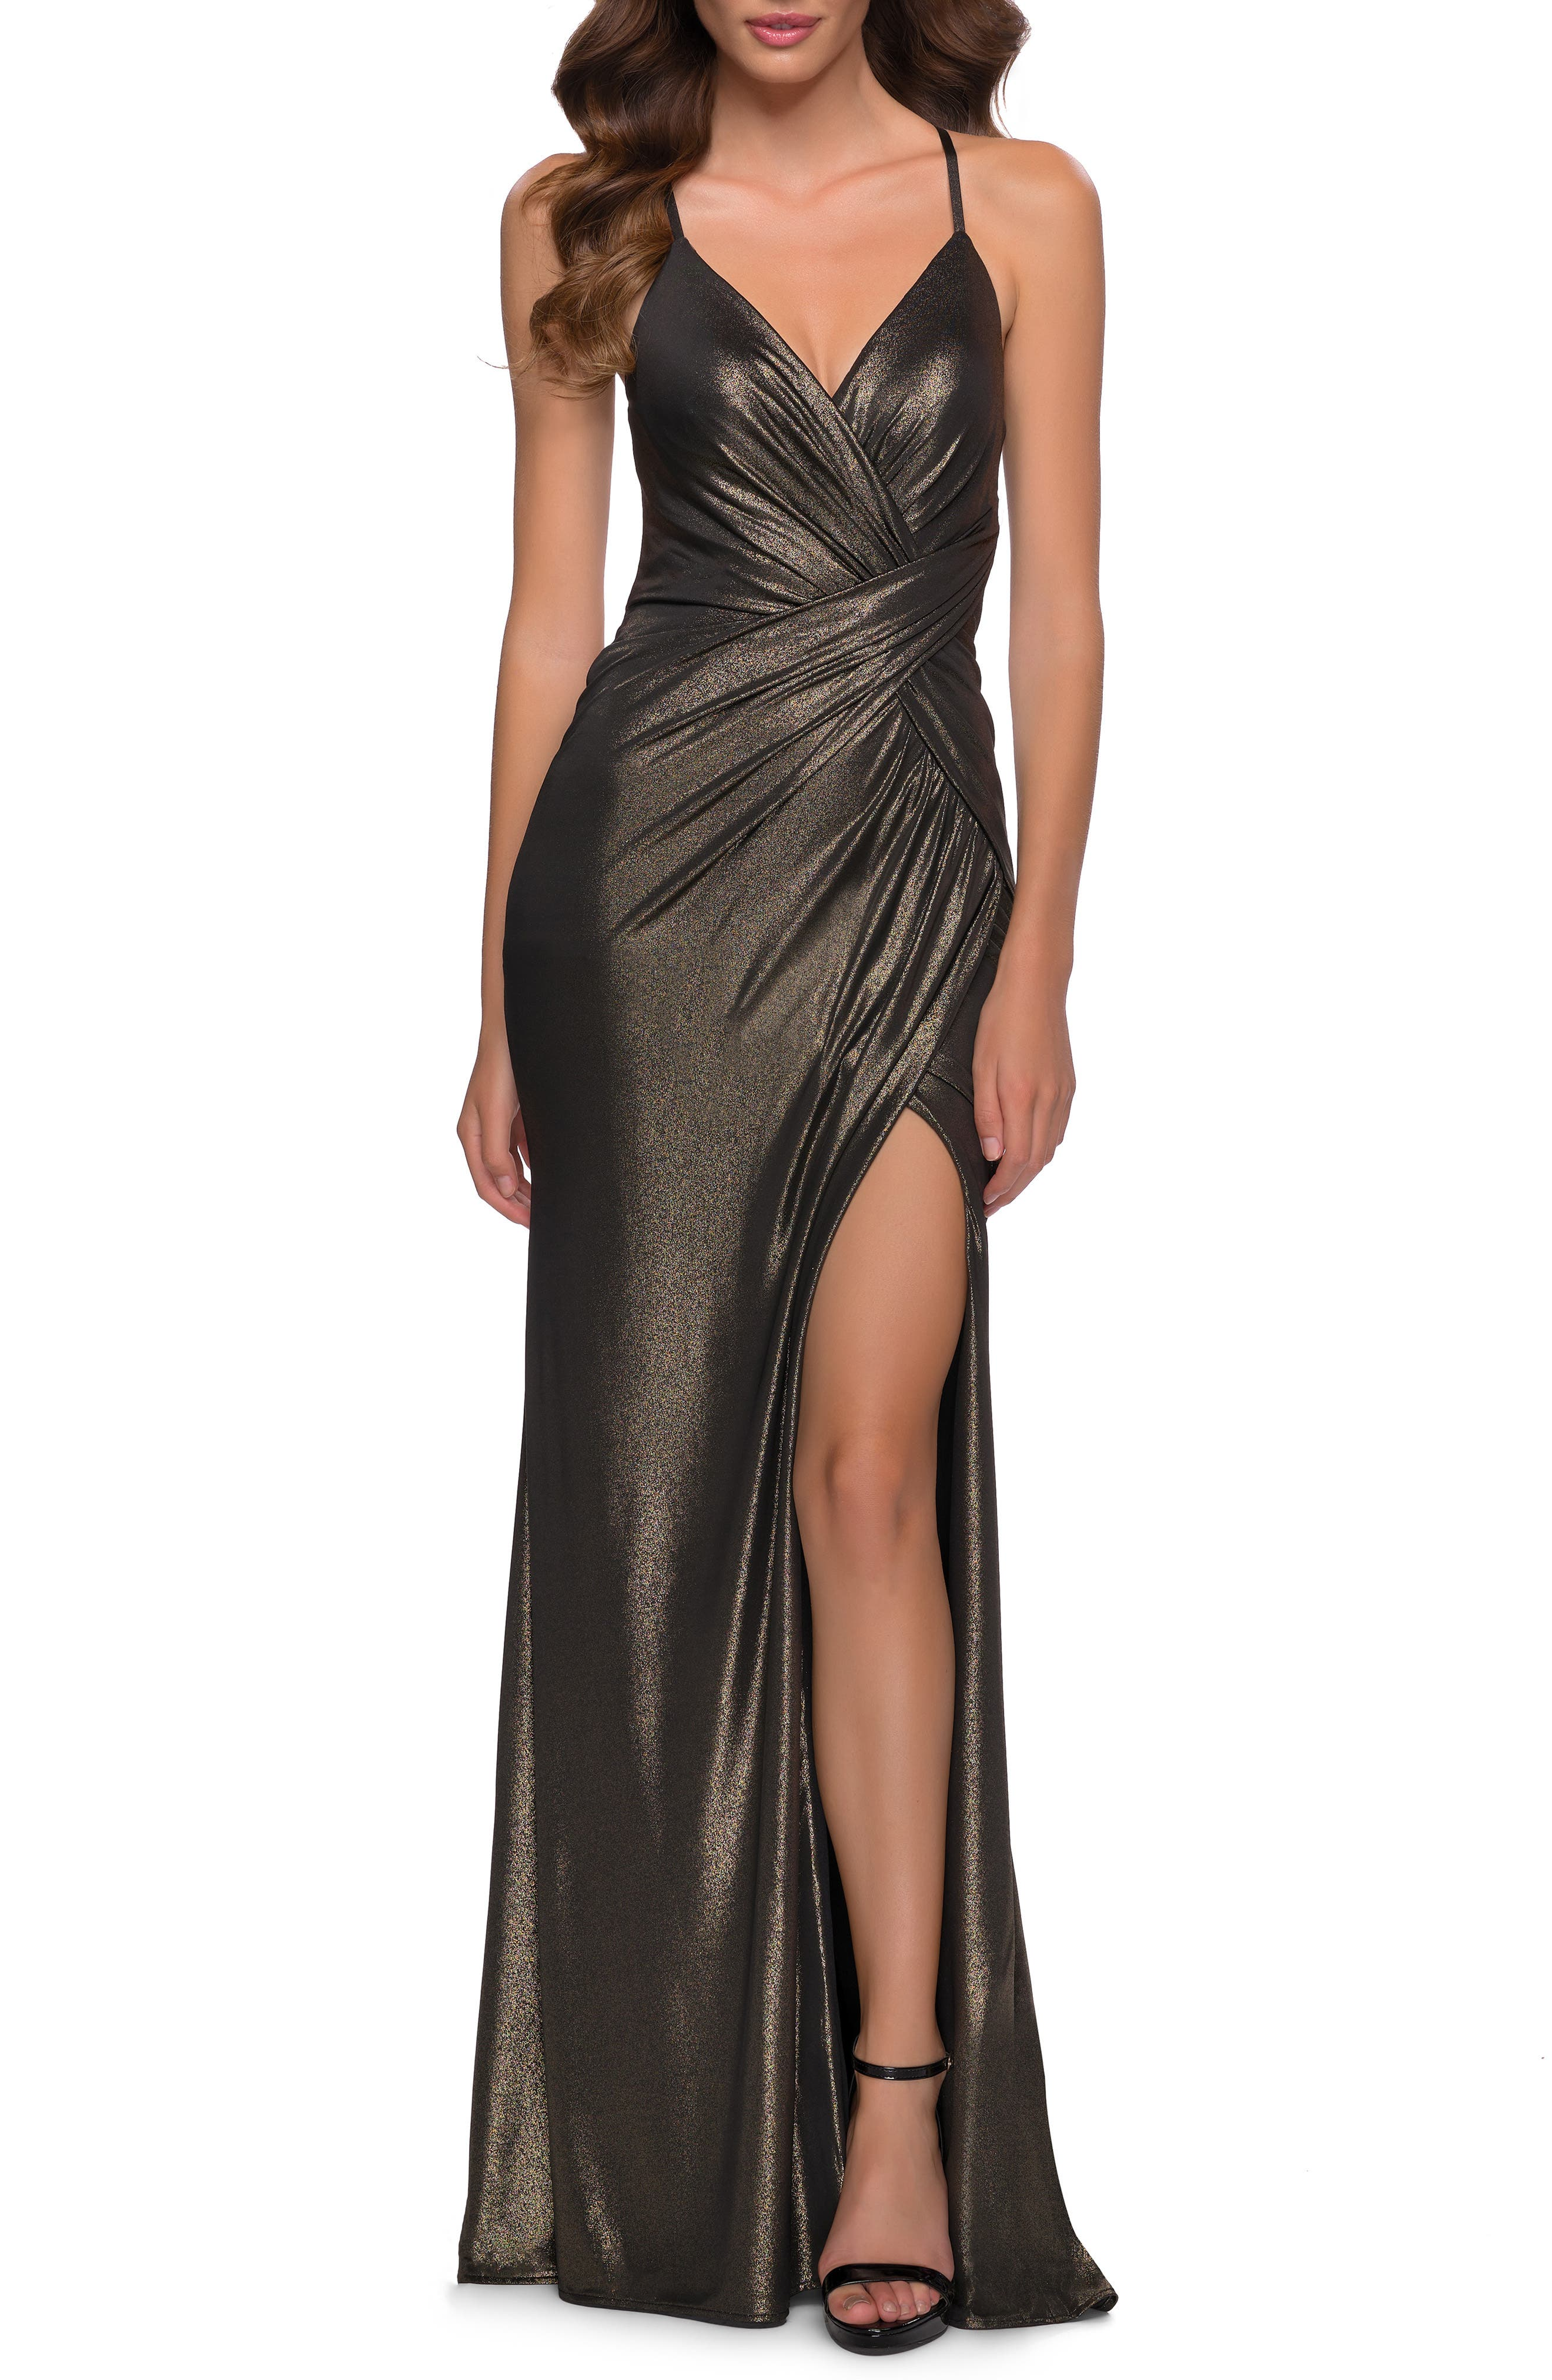 Flaunt a sultry silhouette in this shimmering jersey gown styled with a flattering drape, strappy cutout back and soaring stem-showing hem. Style Name: La Femme Spaghetti Strap Metallic Jersey Gown. Style Number: 6155862. Available in stores.